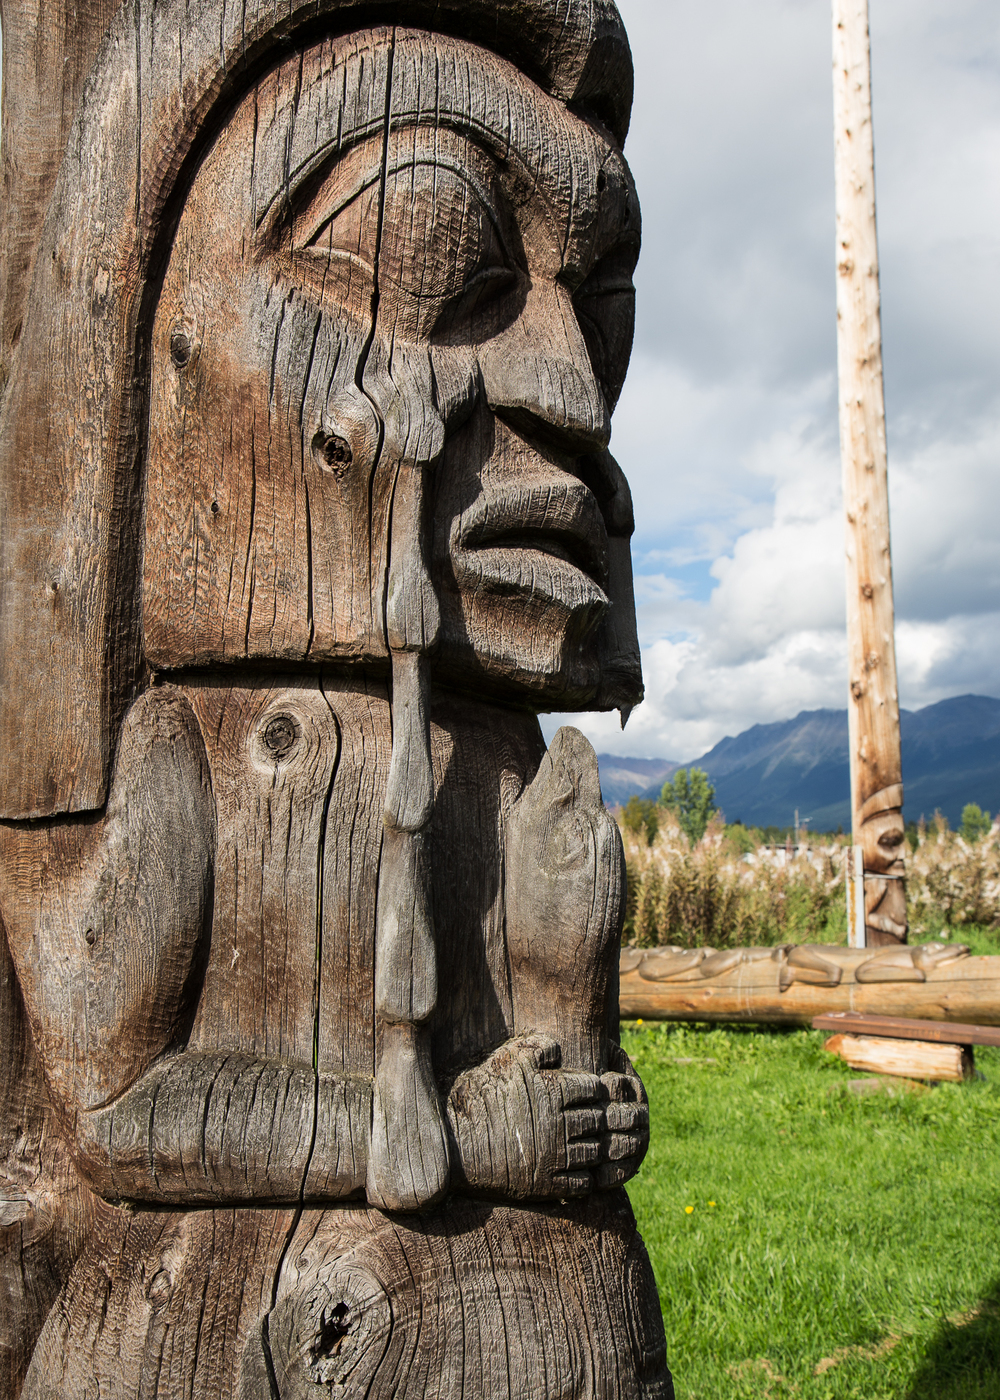 The carvings on the totem poles were pretty amazing.